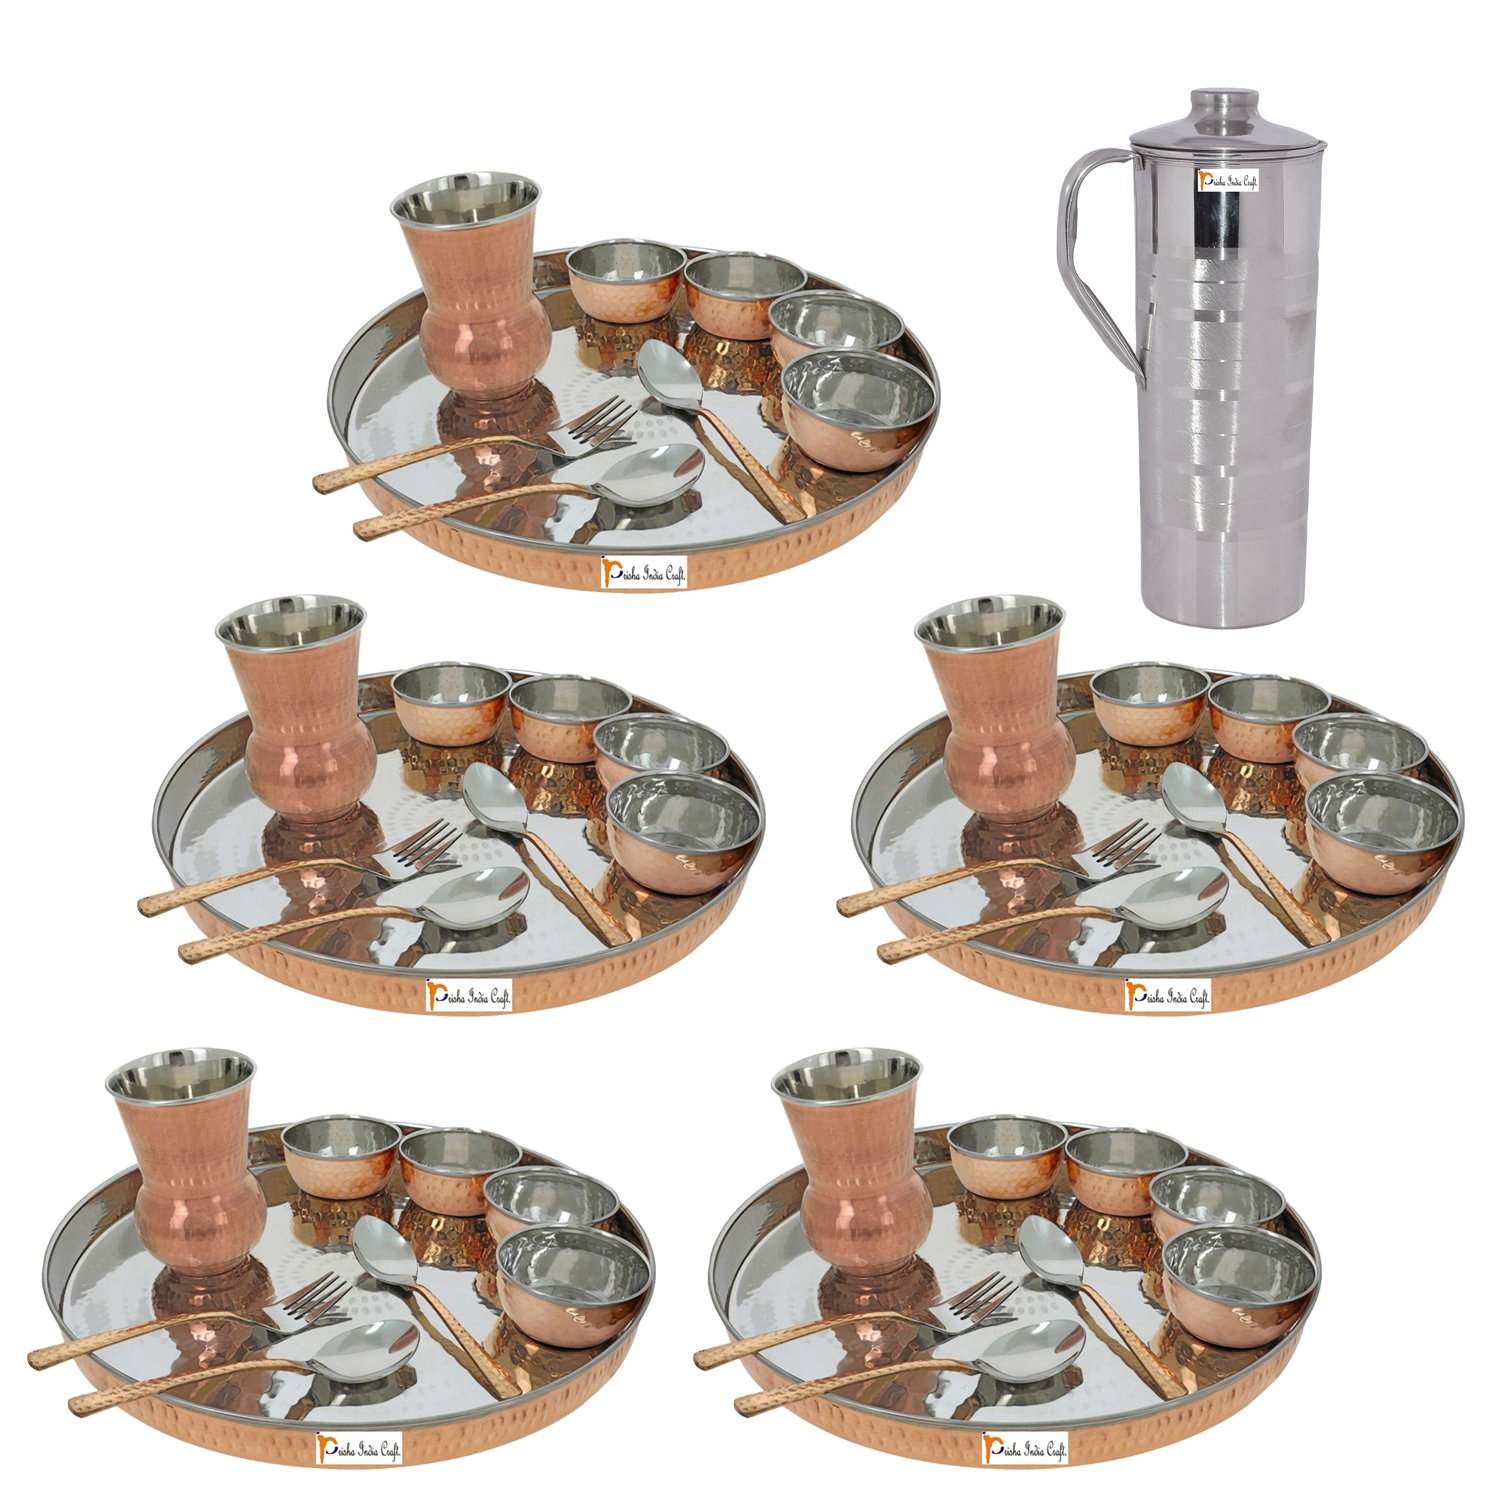 Prisha India Craft ® Set of 5 Traditional Stainless Steel Copper Dinner Set of Thali Plate, Bowls, Glass and Spoons, Dia 13'' With 1 Stainless Steel Copper Pitcher Jug - Christmas Gift